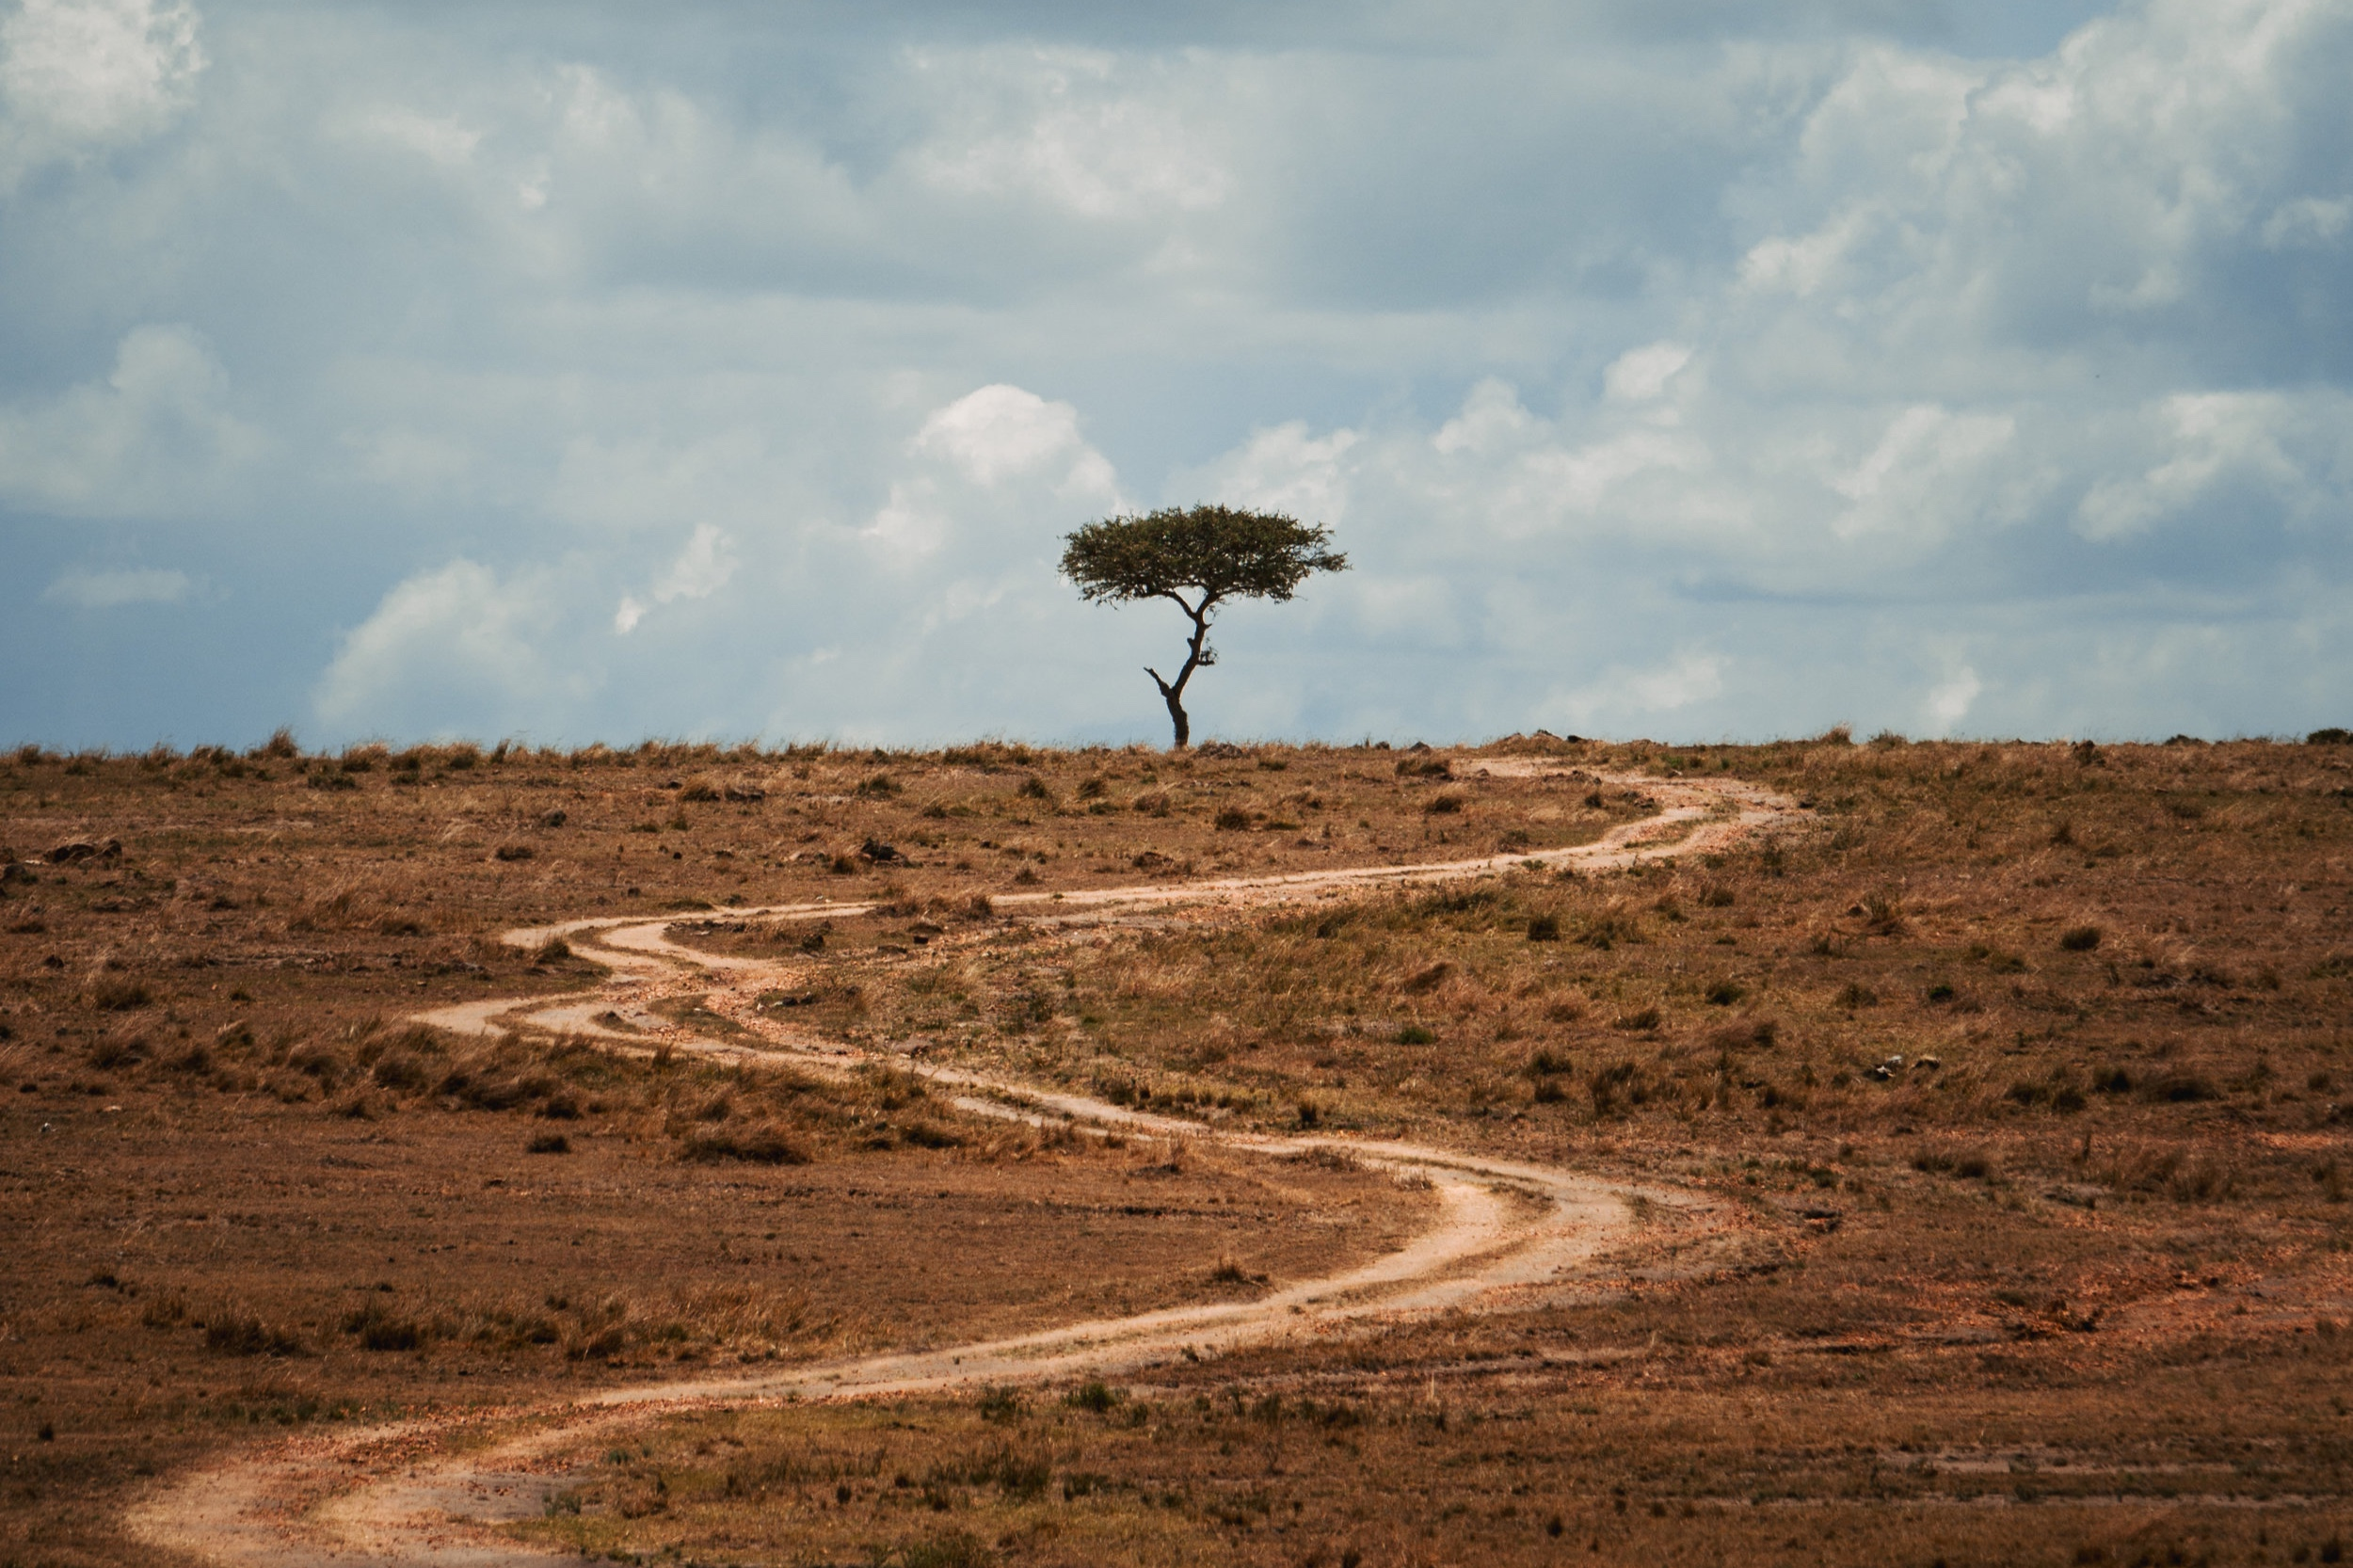 #TheWalkKenya - Walking across an entire country won't be easy. Help us get there.